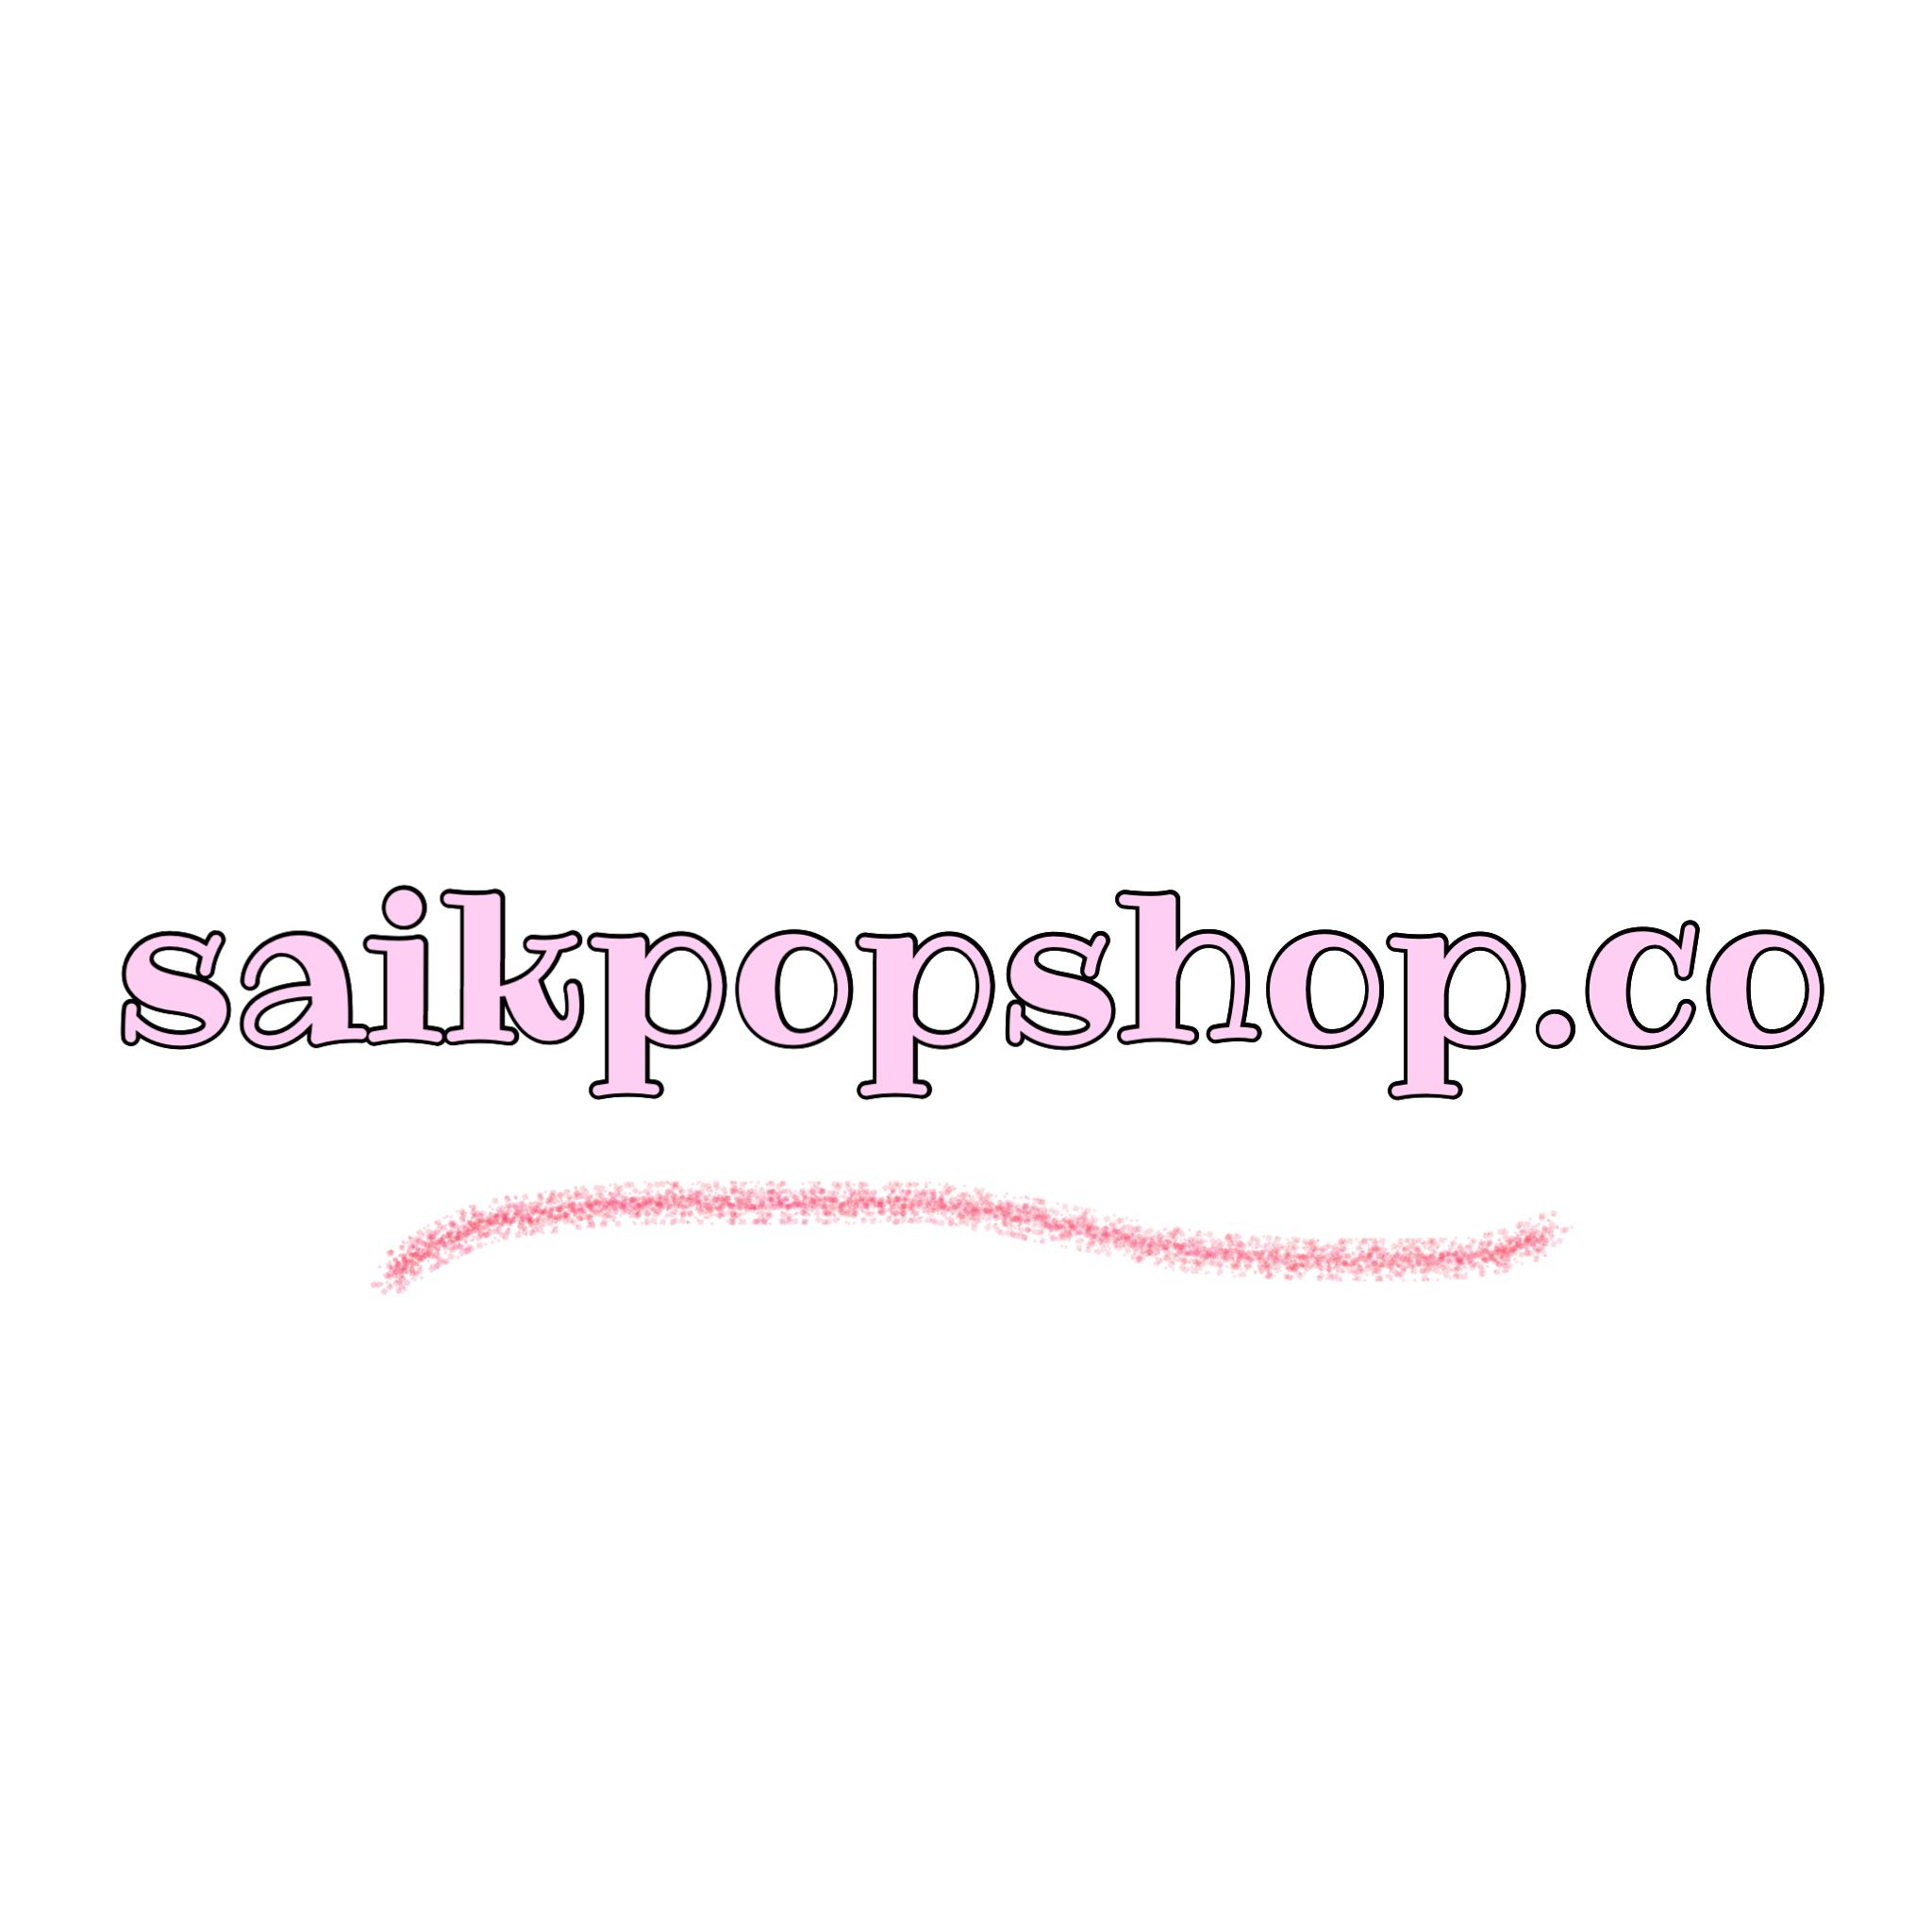 saikpopshop.co